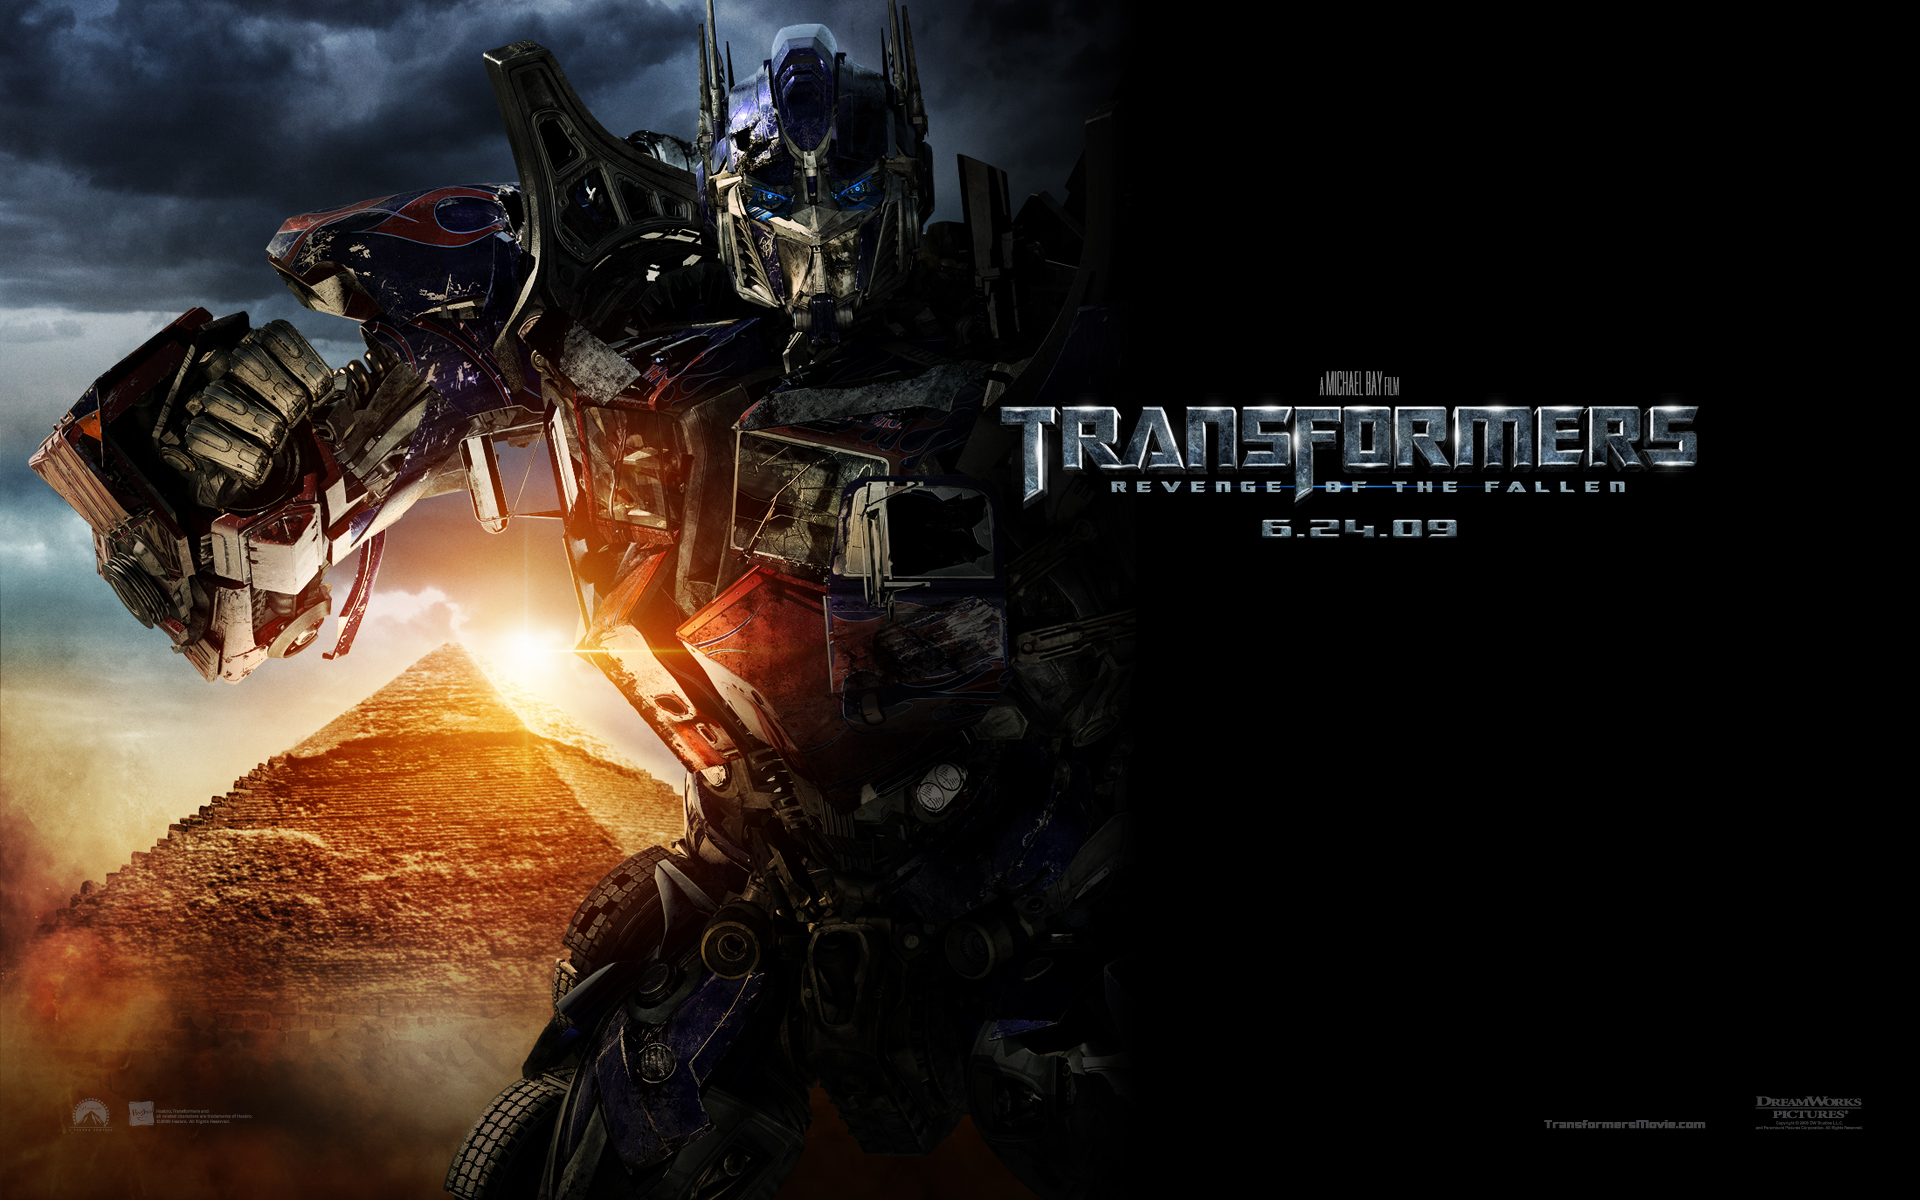 Transformers 2 Revenge of the Fallen 999.46 Kb